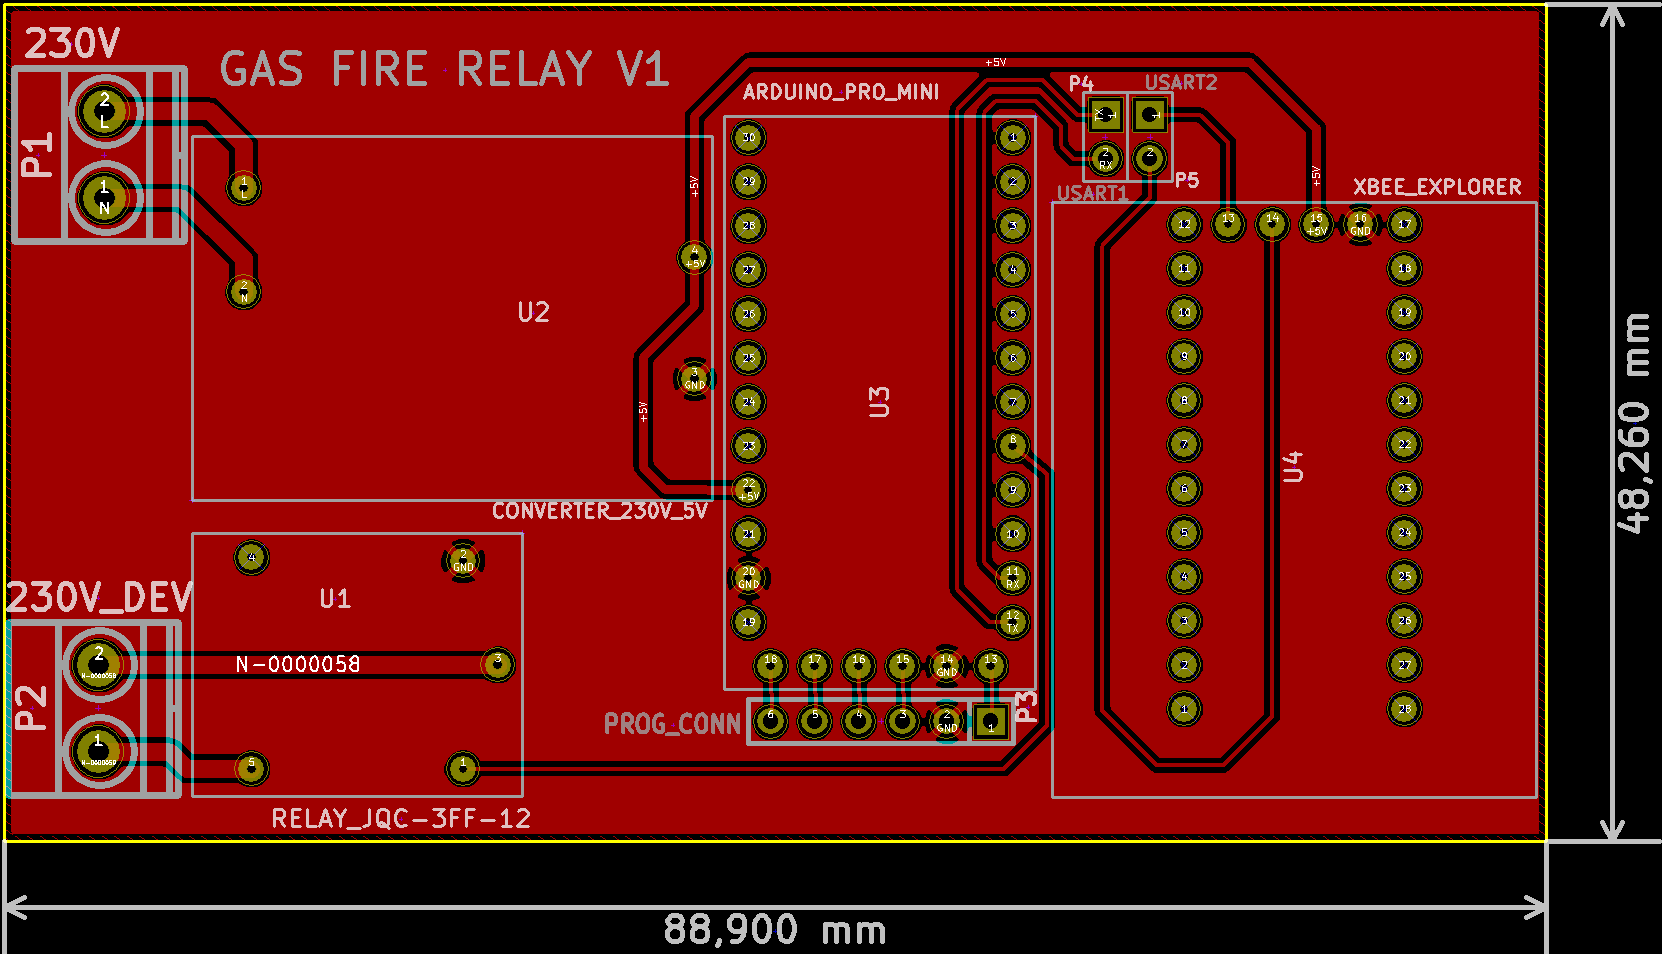 Gas fire relay v1 png v4r9hfkczj